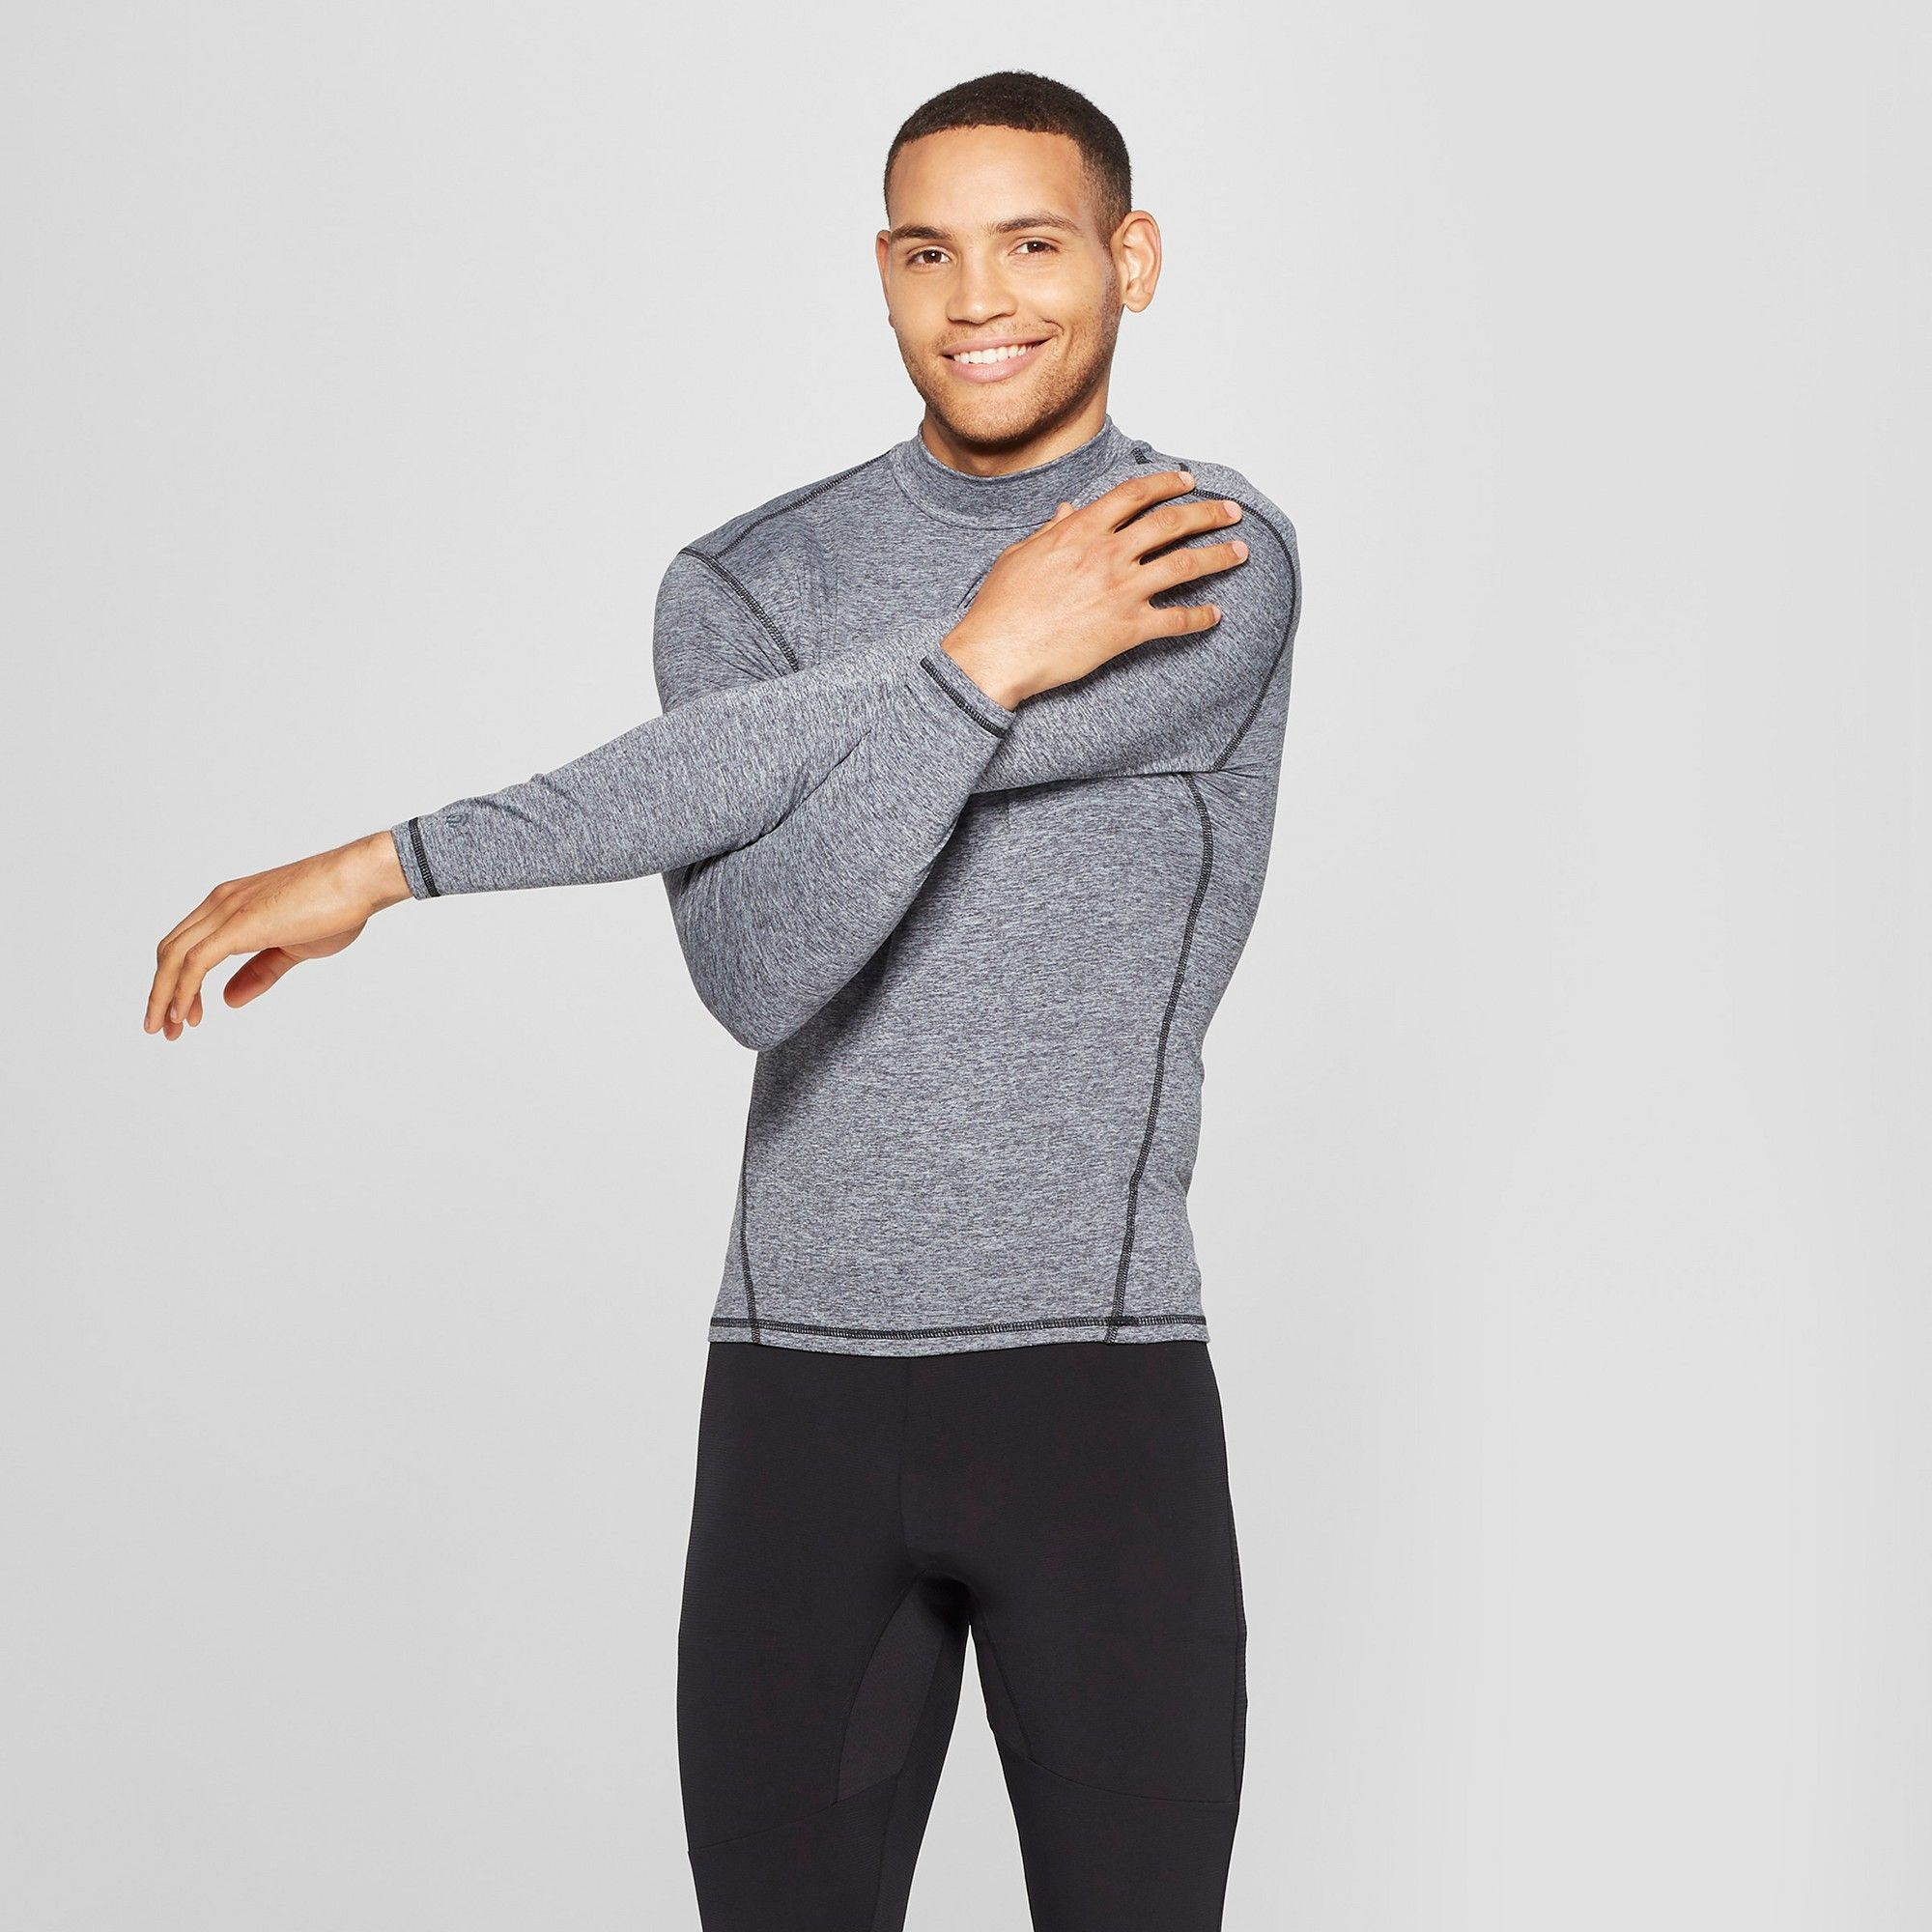 9c367db70 Men's Mock Neck Long Sleeve Compression Top - C9 Champion Silver Filagree  Heather Xxl